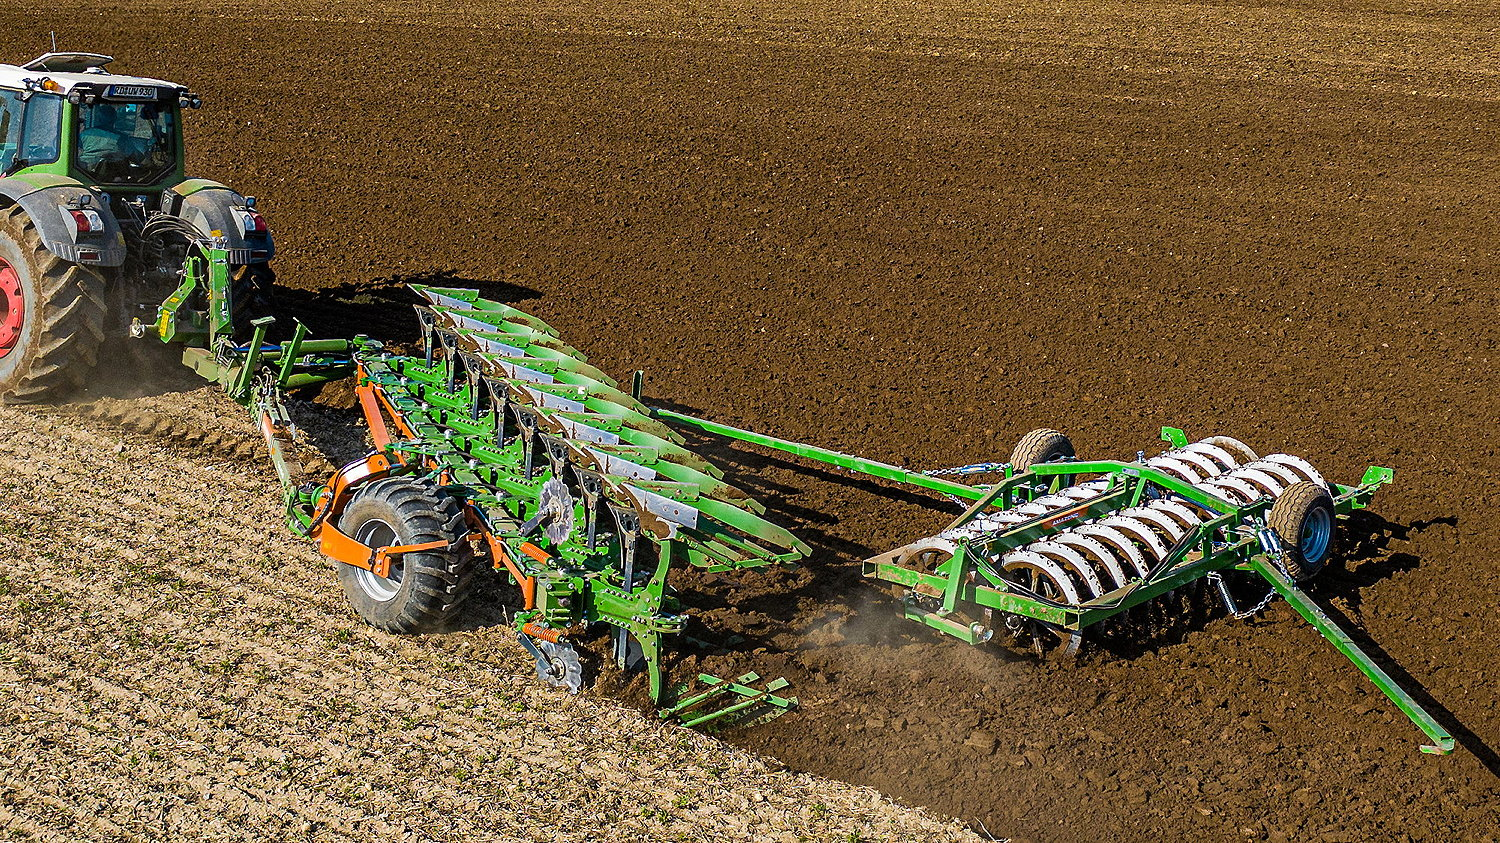 The new Tryok plough from Amazone has been built for tractors of up to 400hp